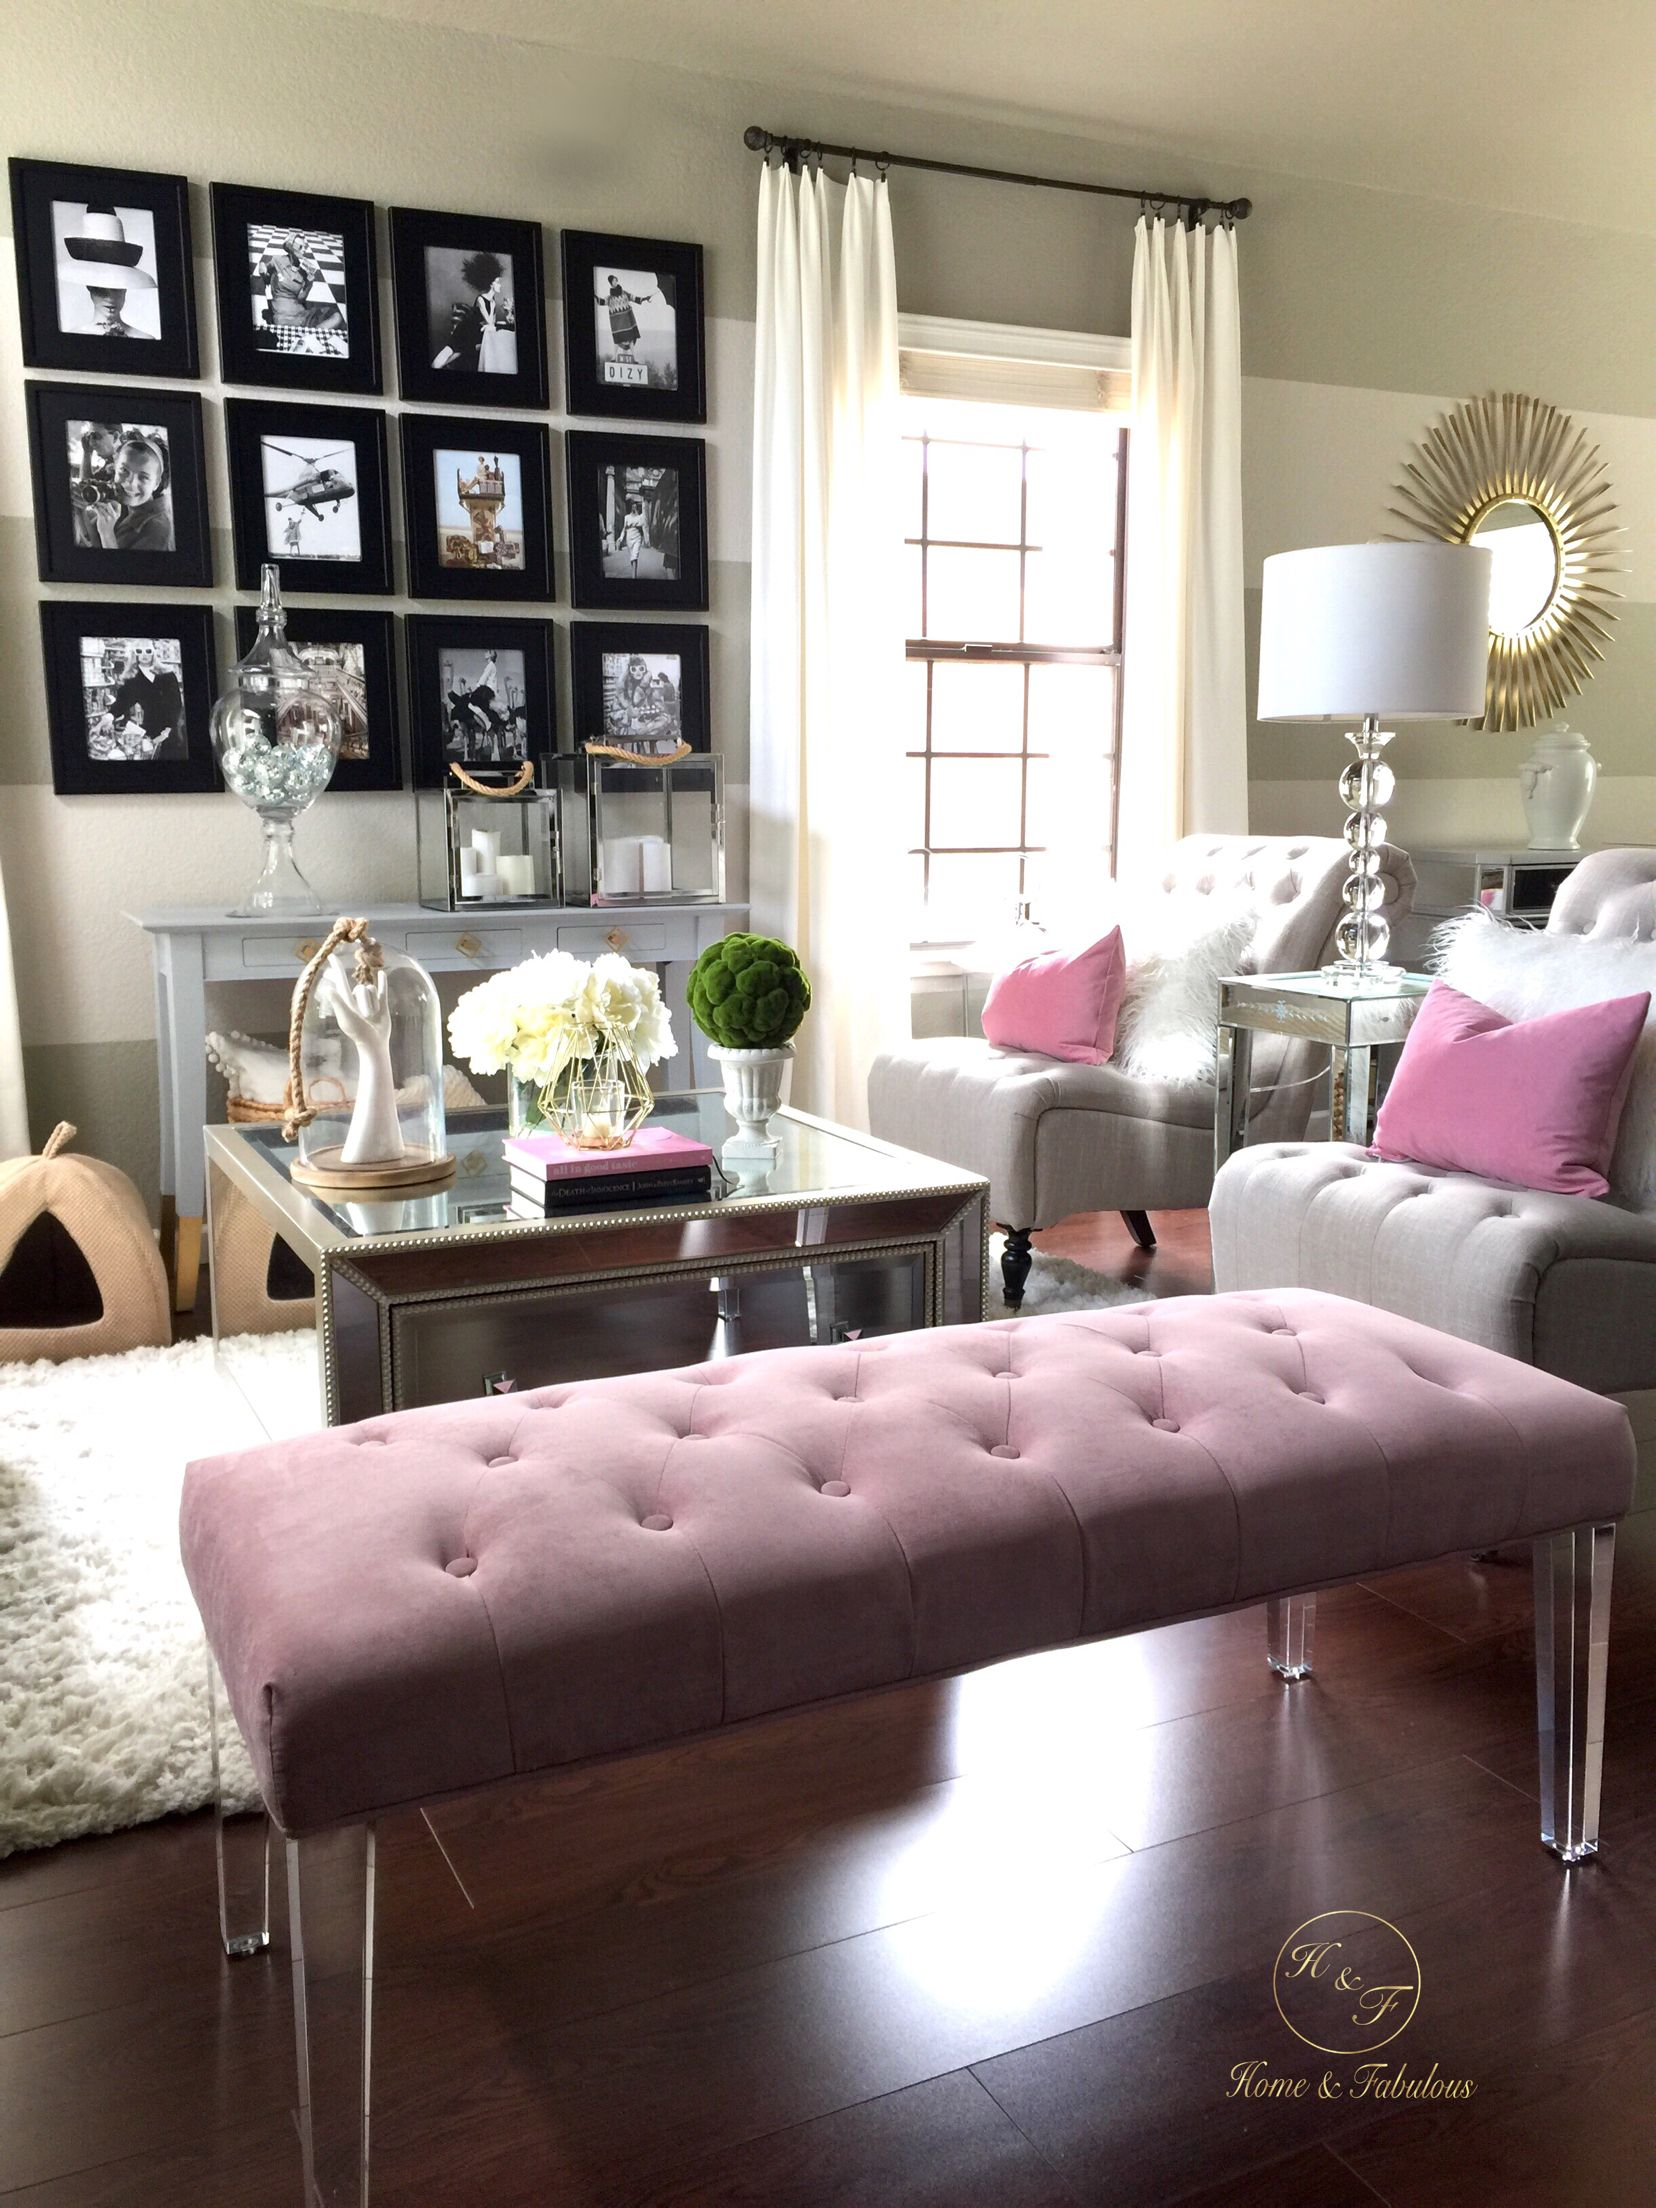 Designing My Living Room Endearing This Pink Tufted Bench From Homegoods Really Makes My Living Room Inspiration